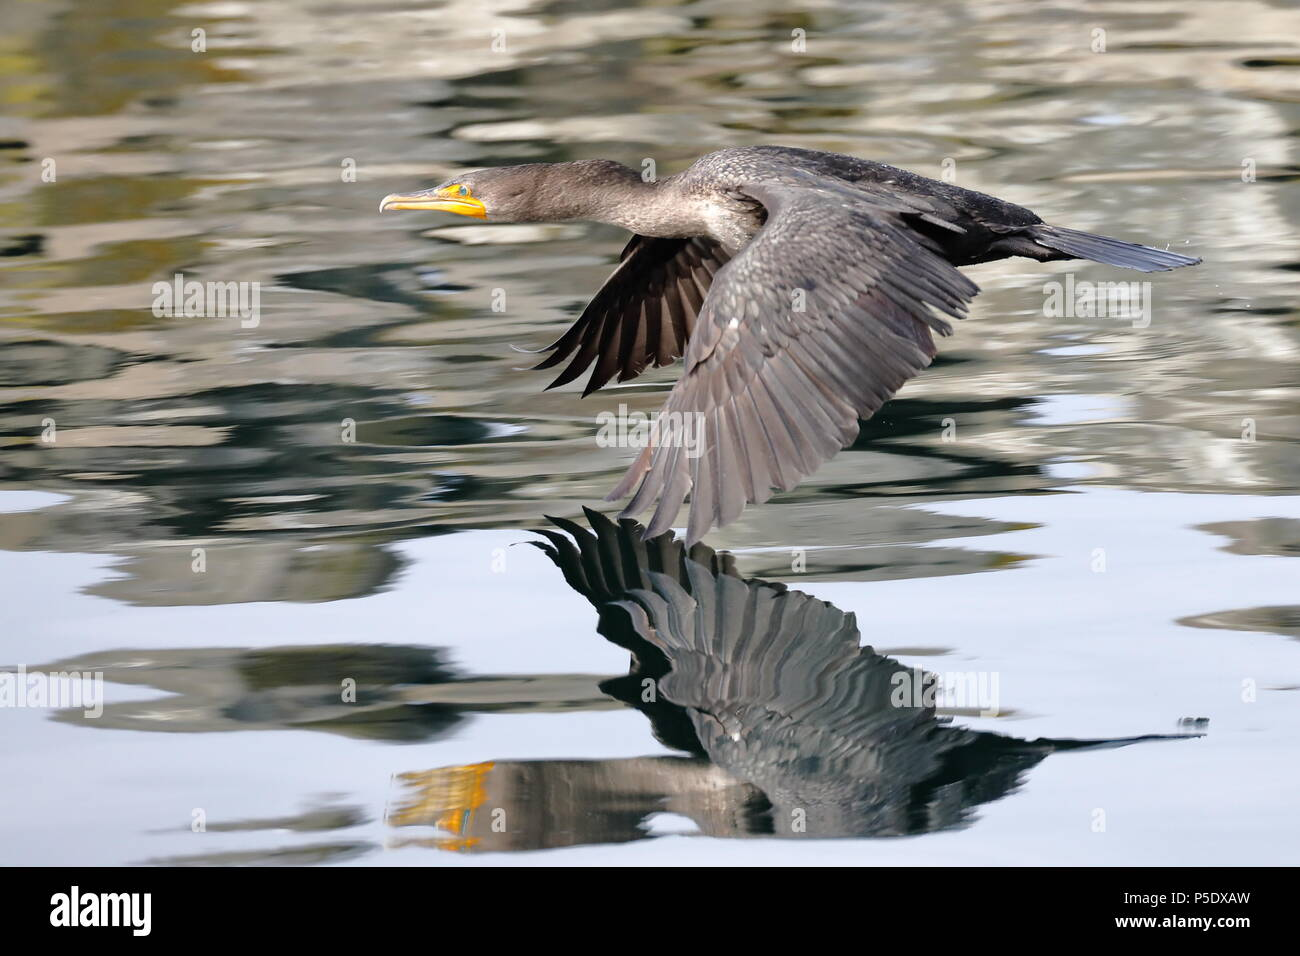 Double-Crested Cormorant in flight - Stock Image